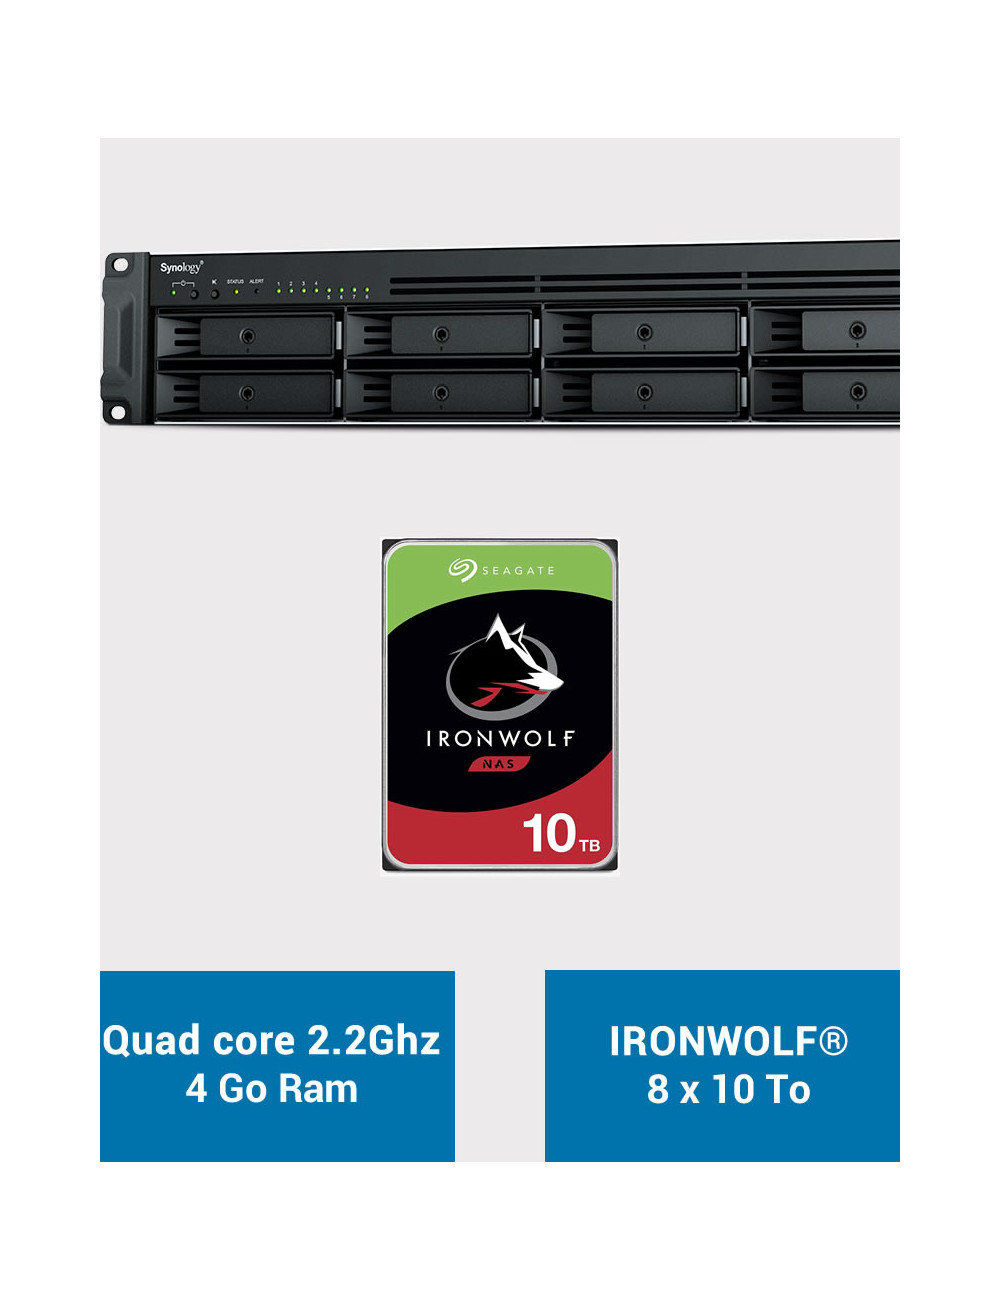 Synology RS1221+ Serveur NAS Rack IRONWOLF 80To (8x10To)